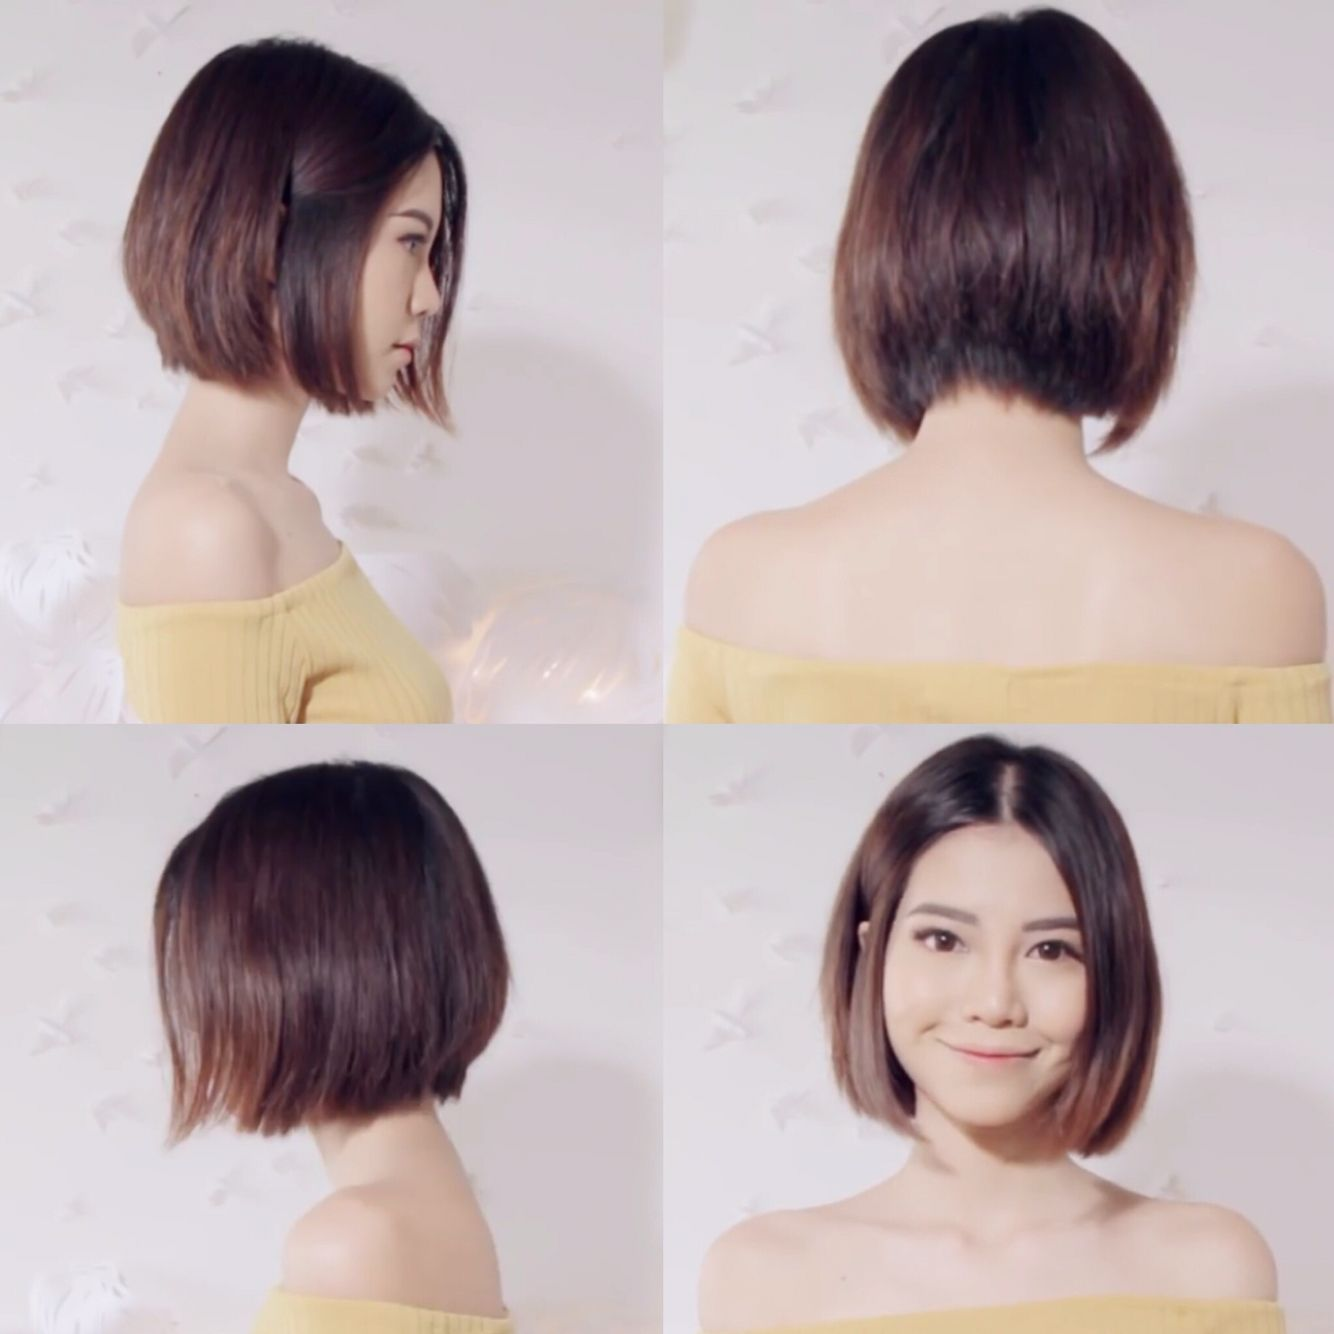 sichenmakeupholic on youtube is short hair goals #asian #bob